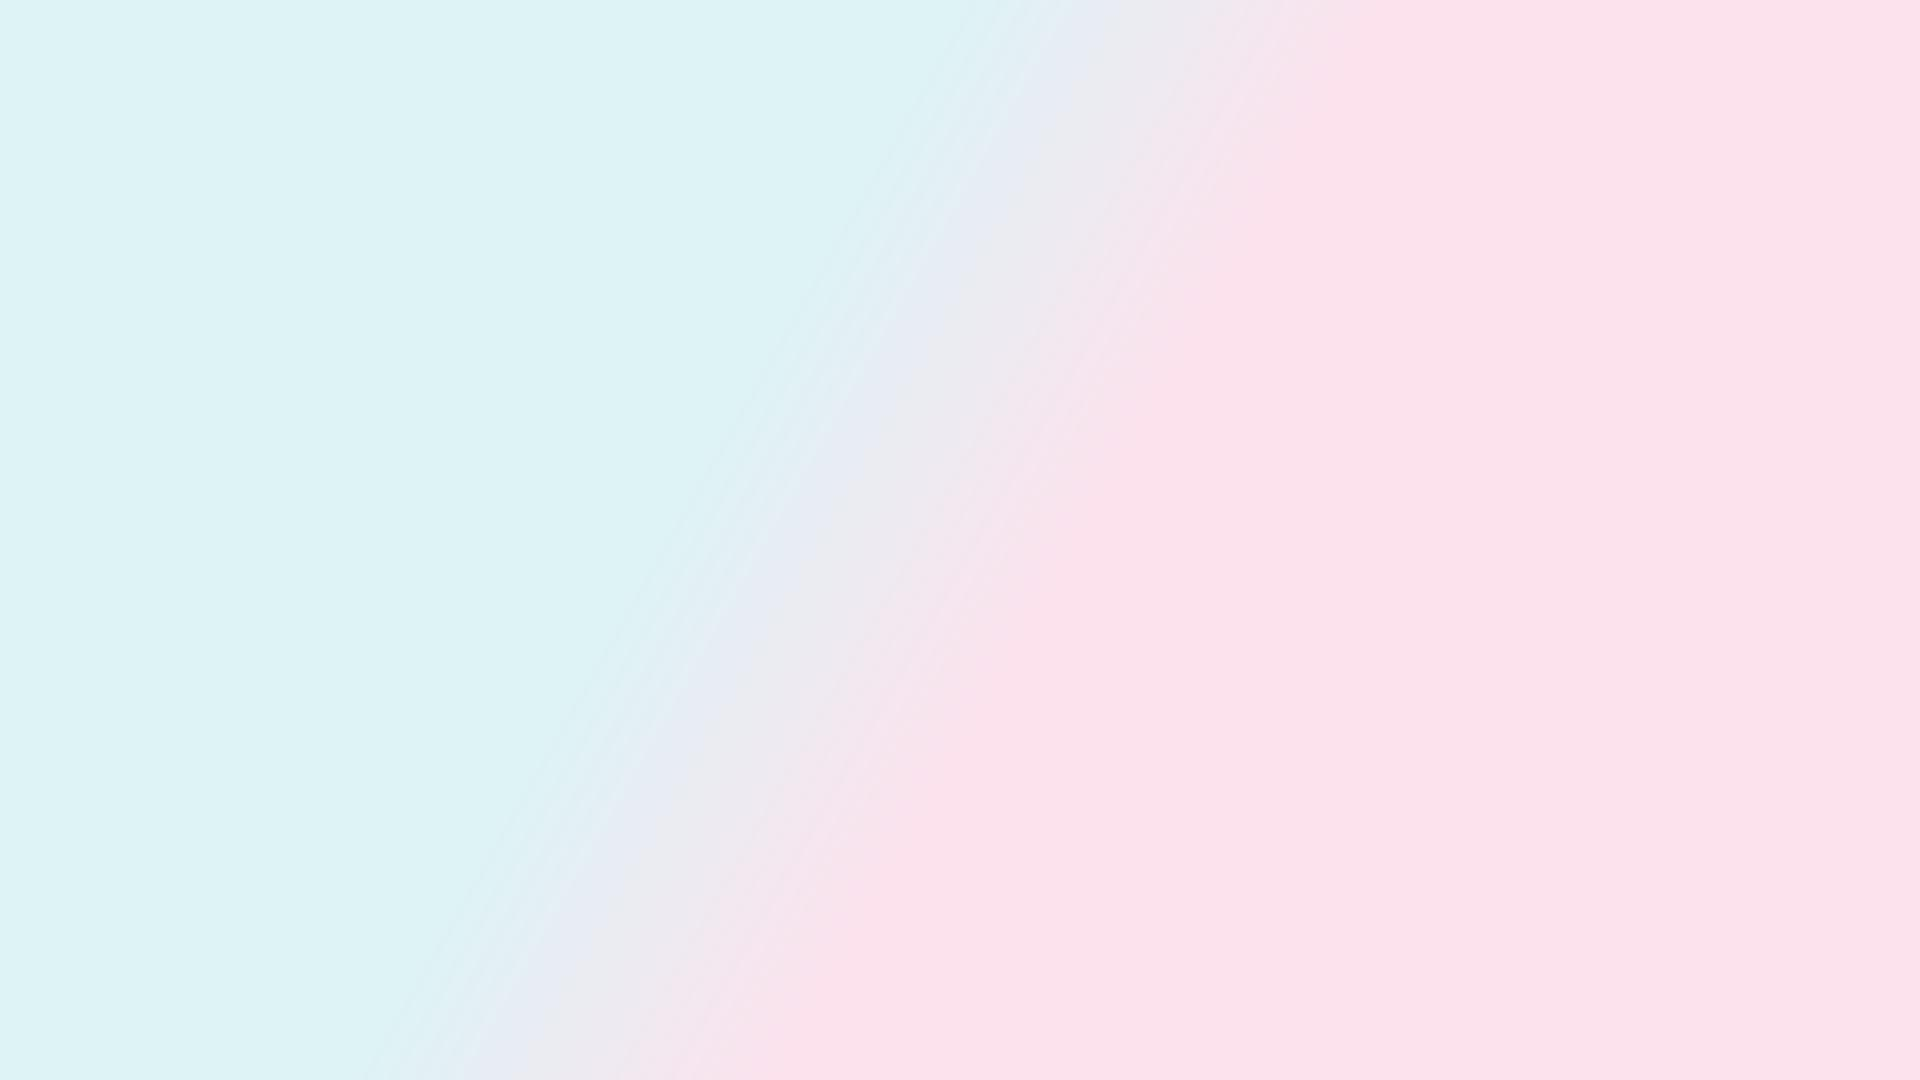 Rose quartz and Serenity Gradient